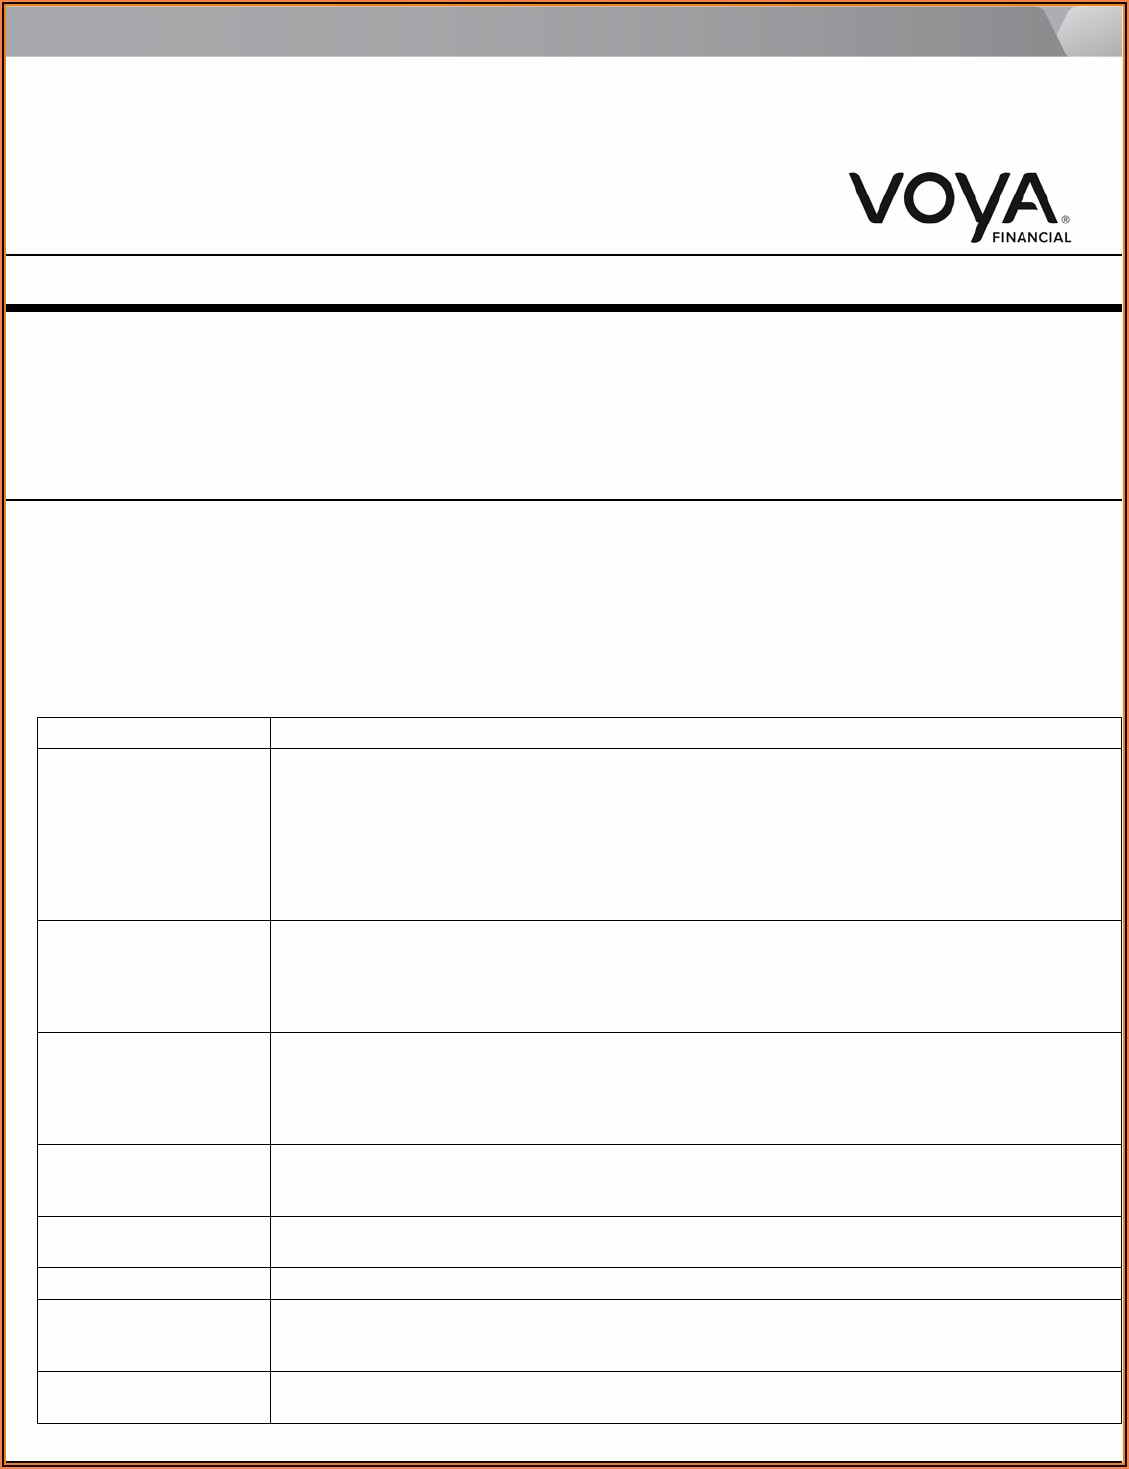 Voya Financial Annuity Claim Form